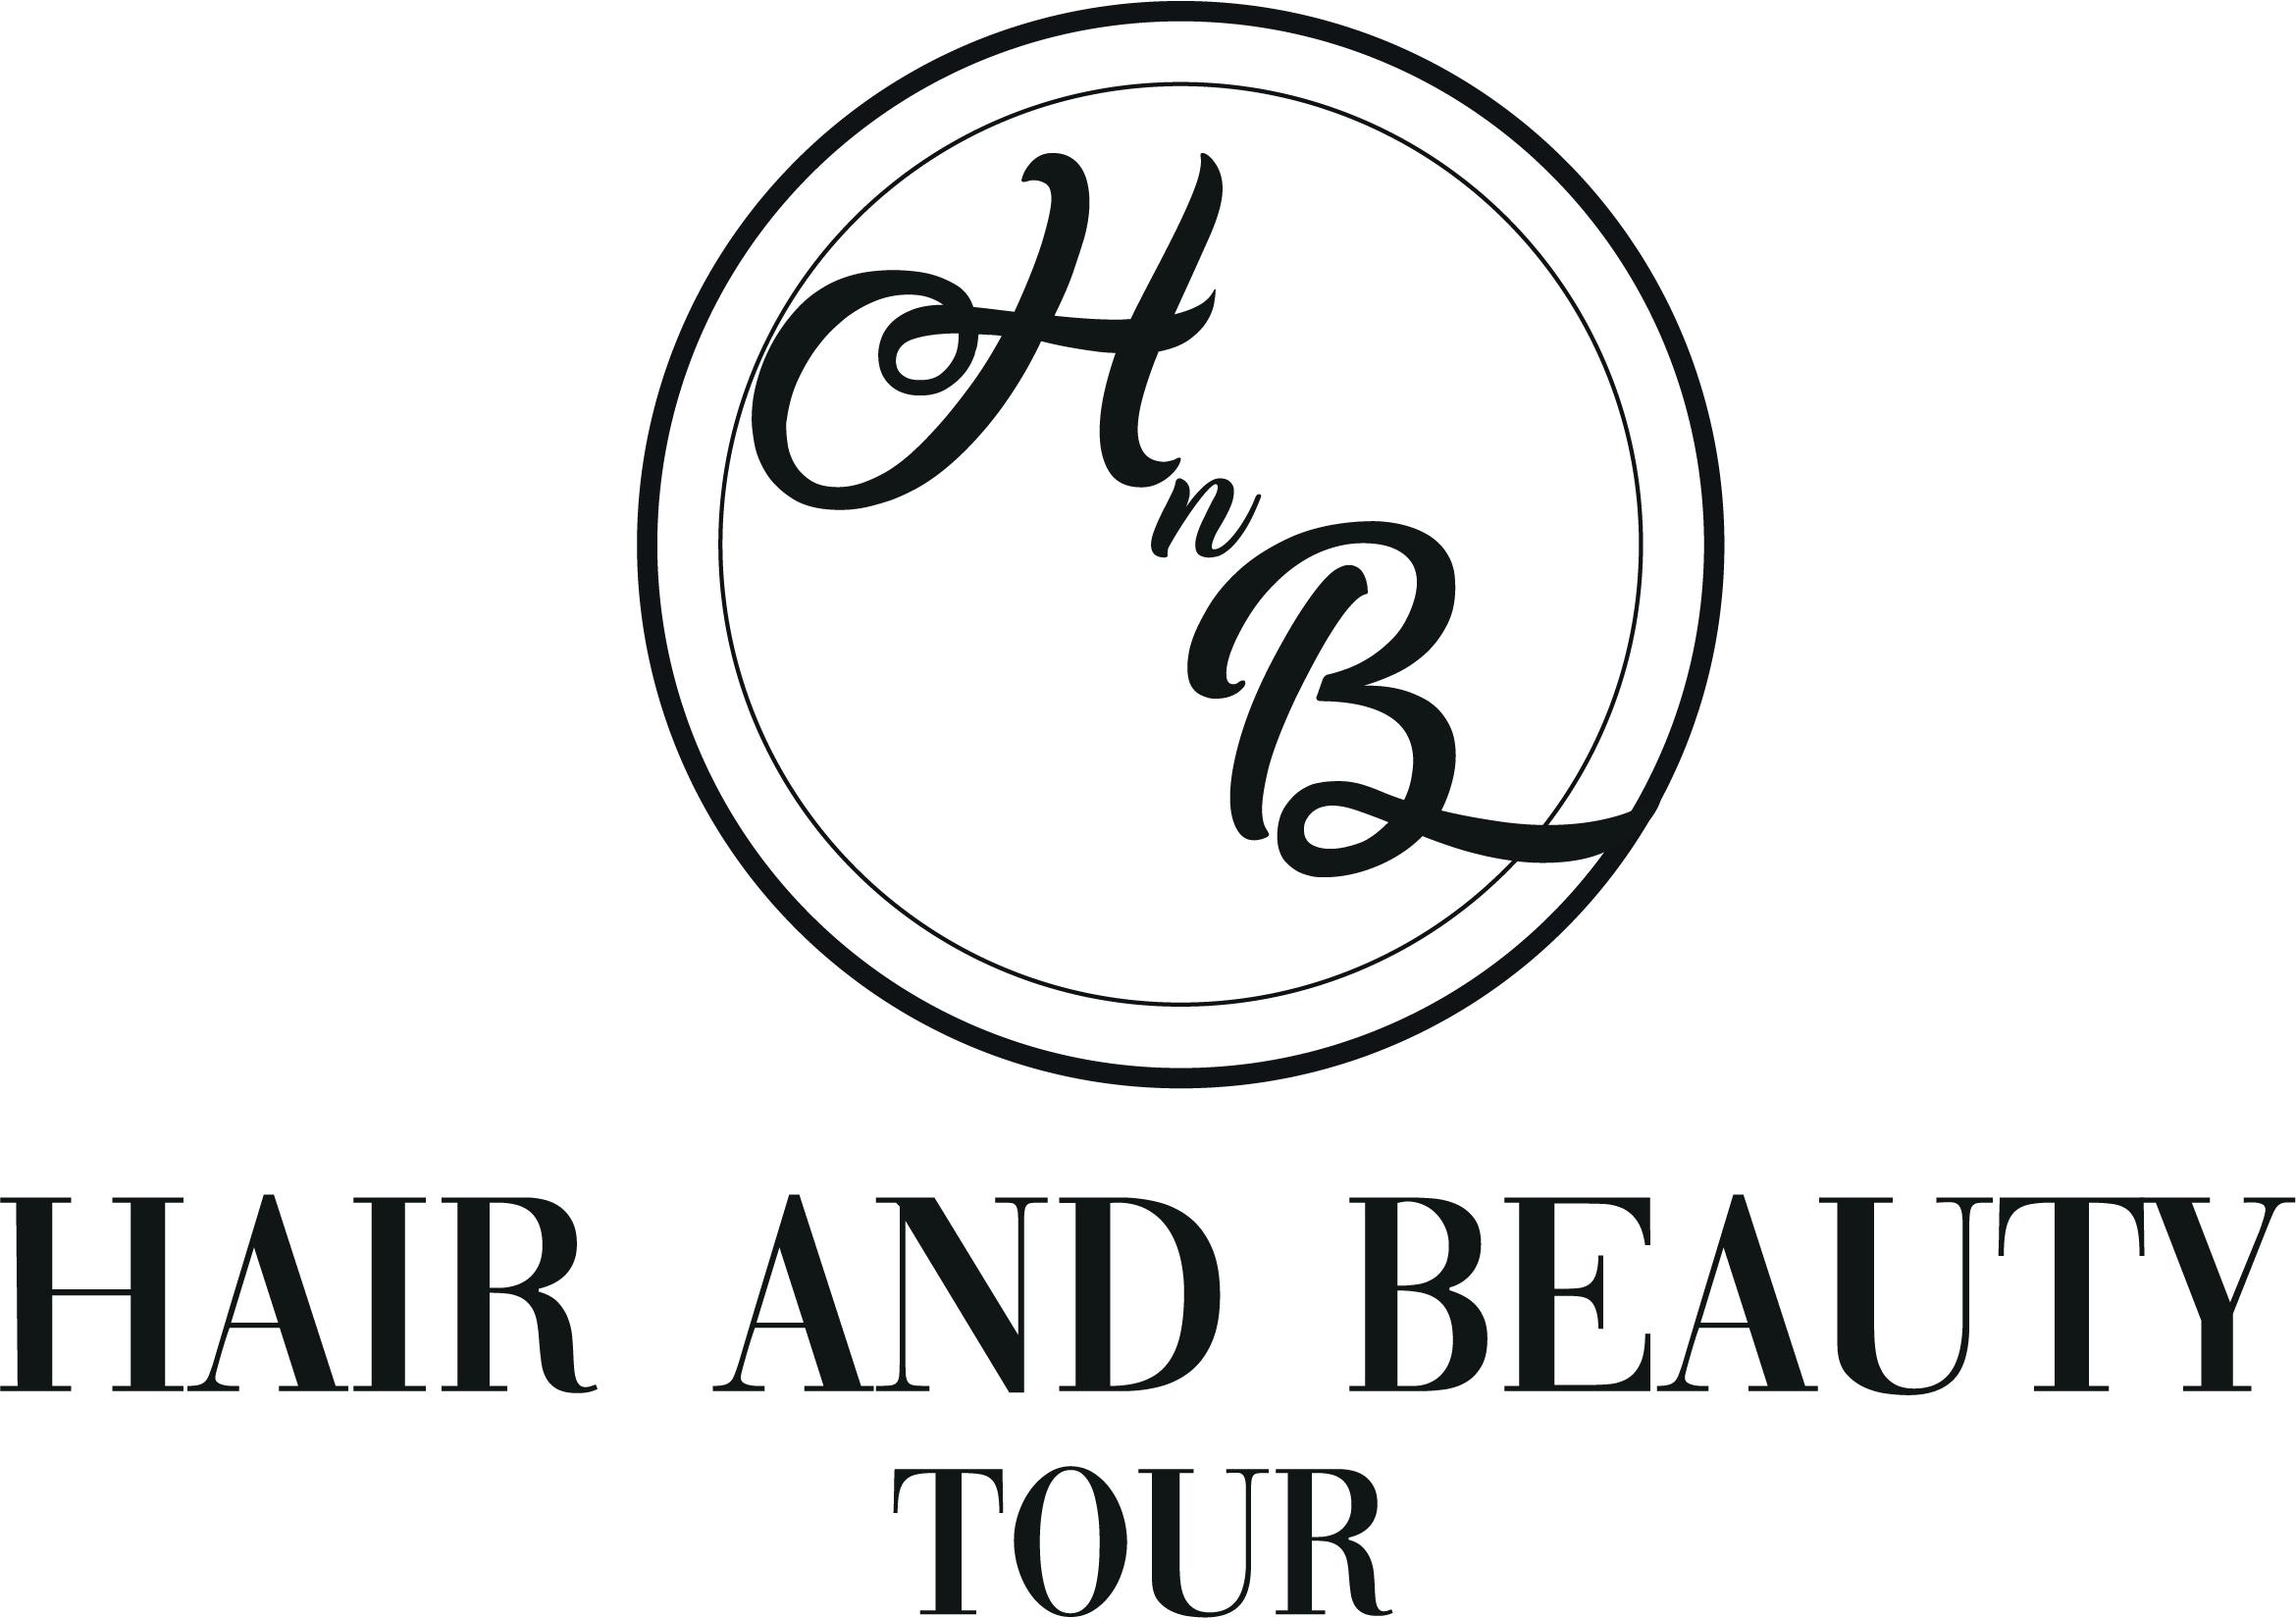 hair_and_beauty_tour